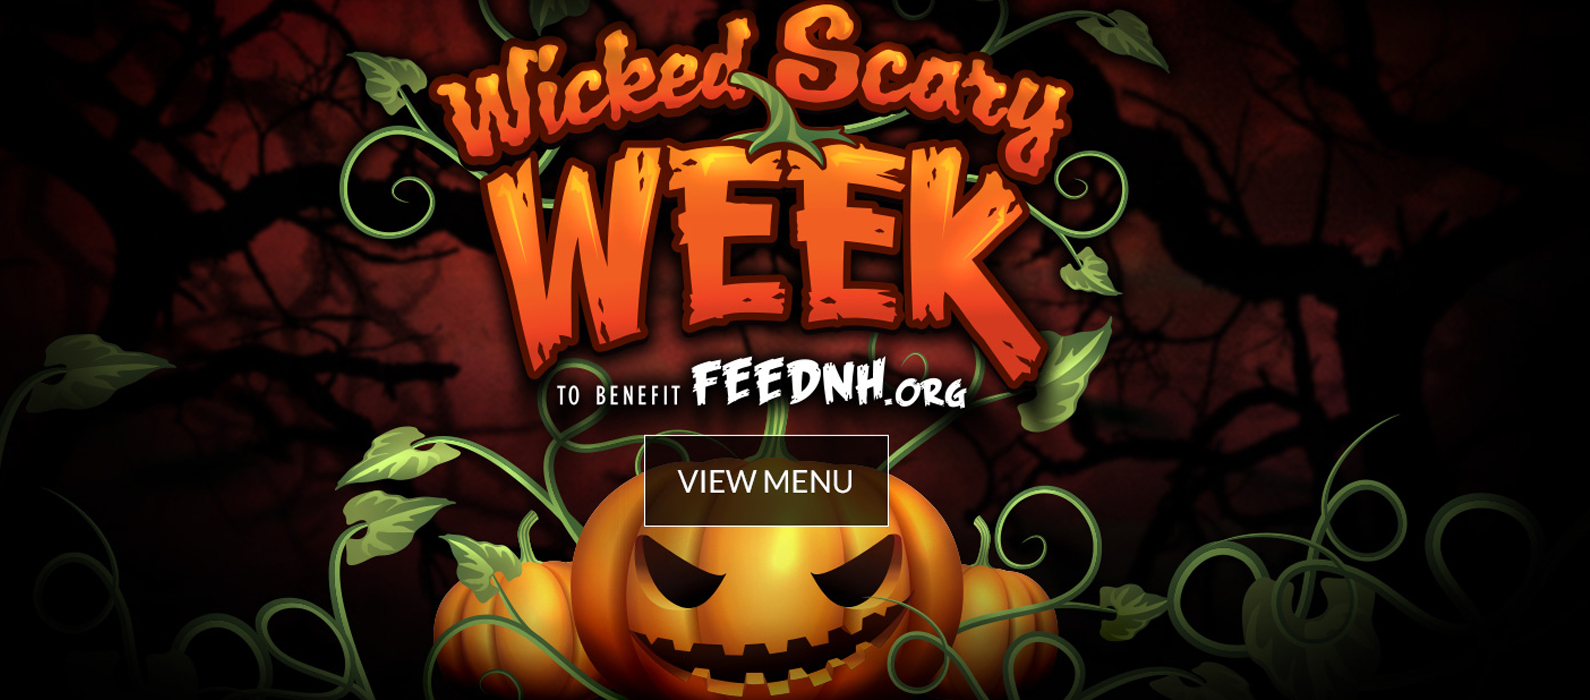 Scary Scarty Week